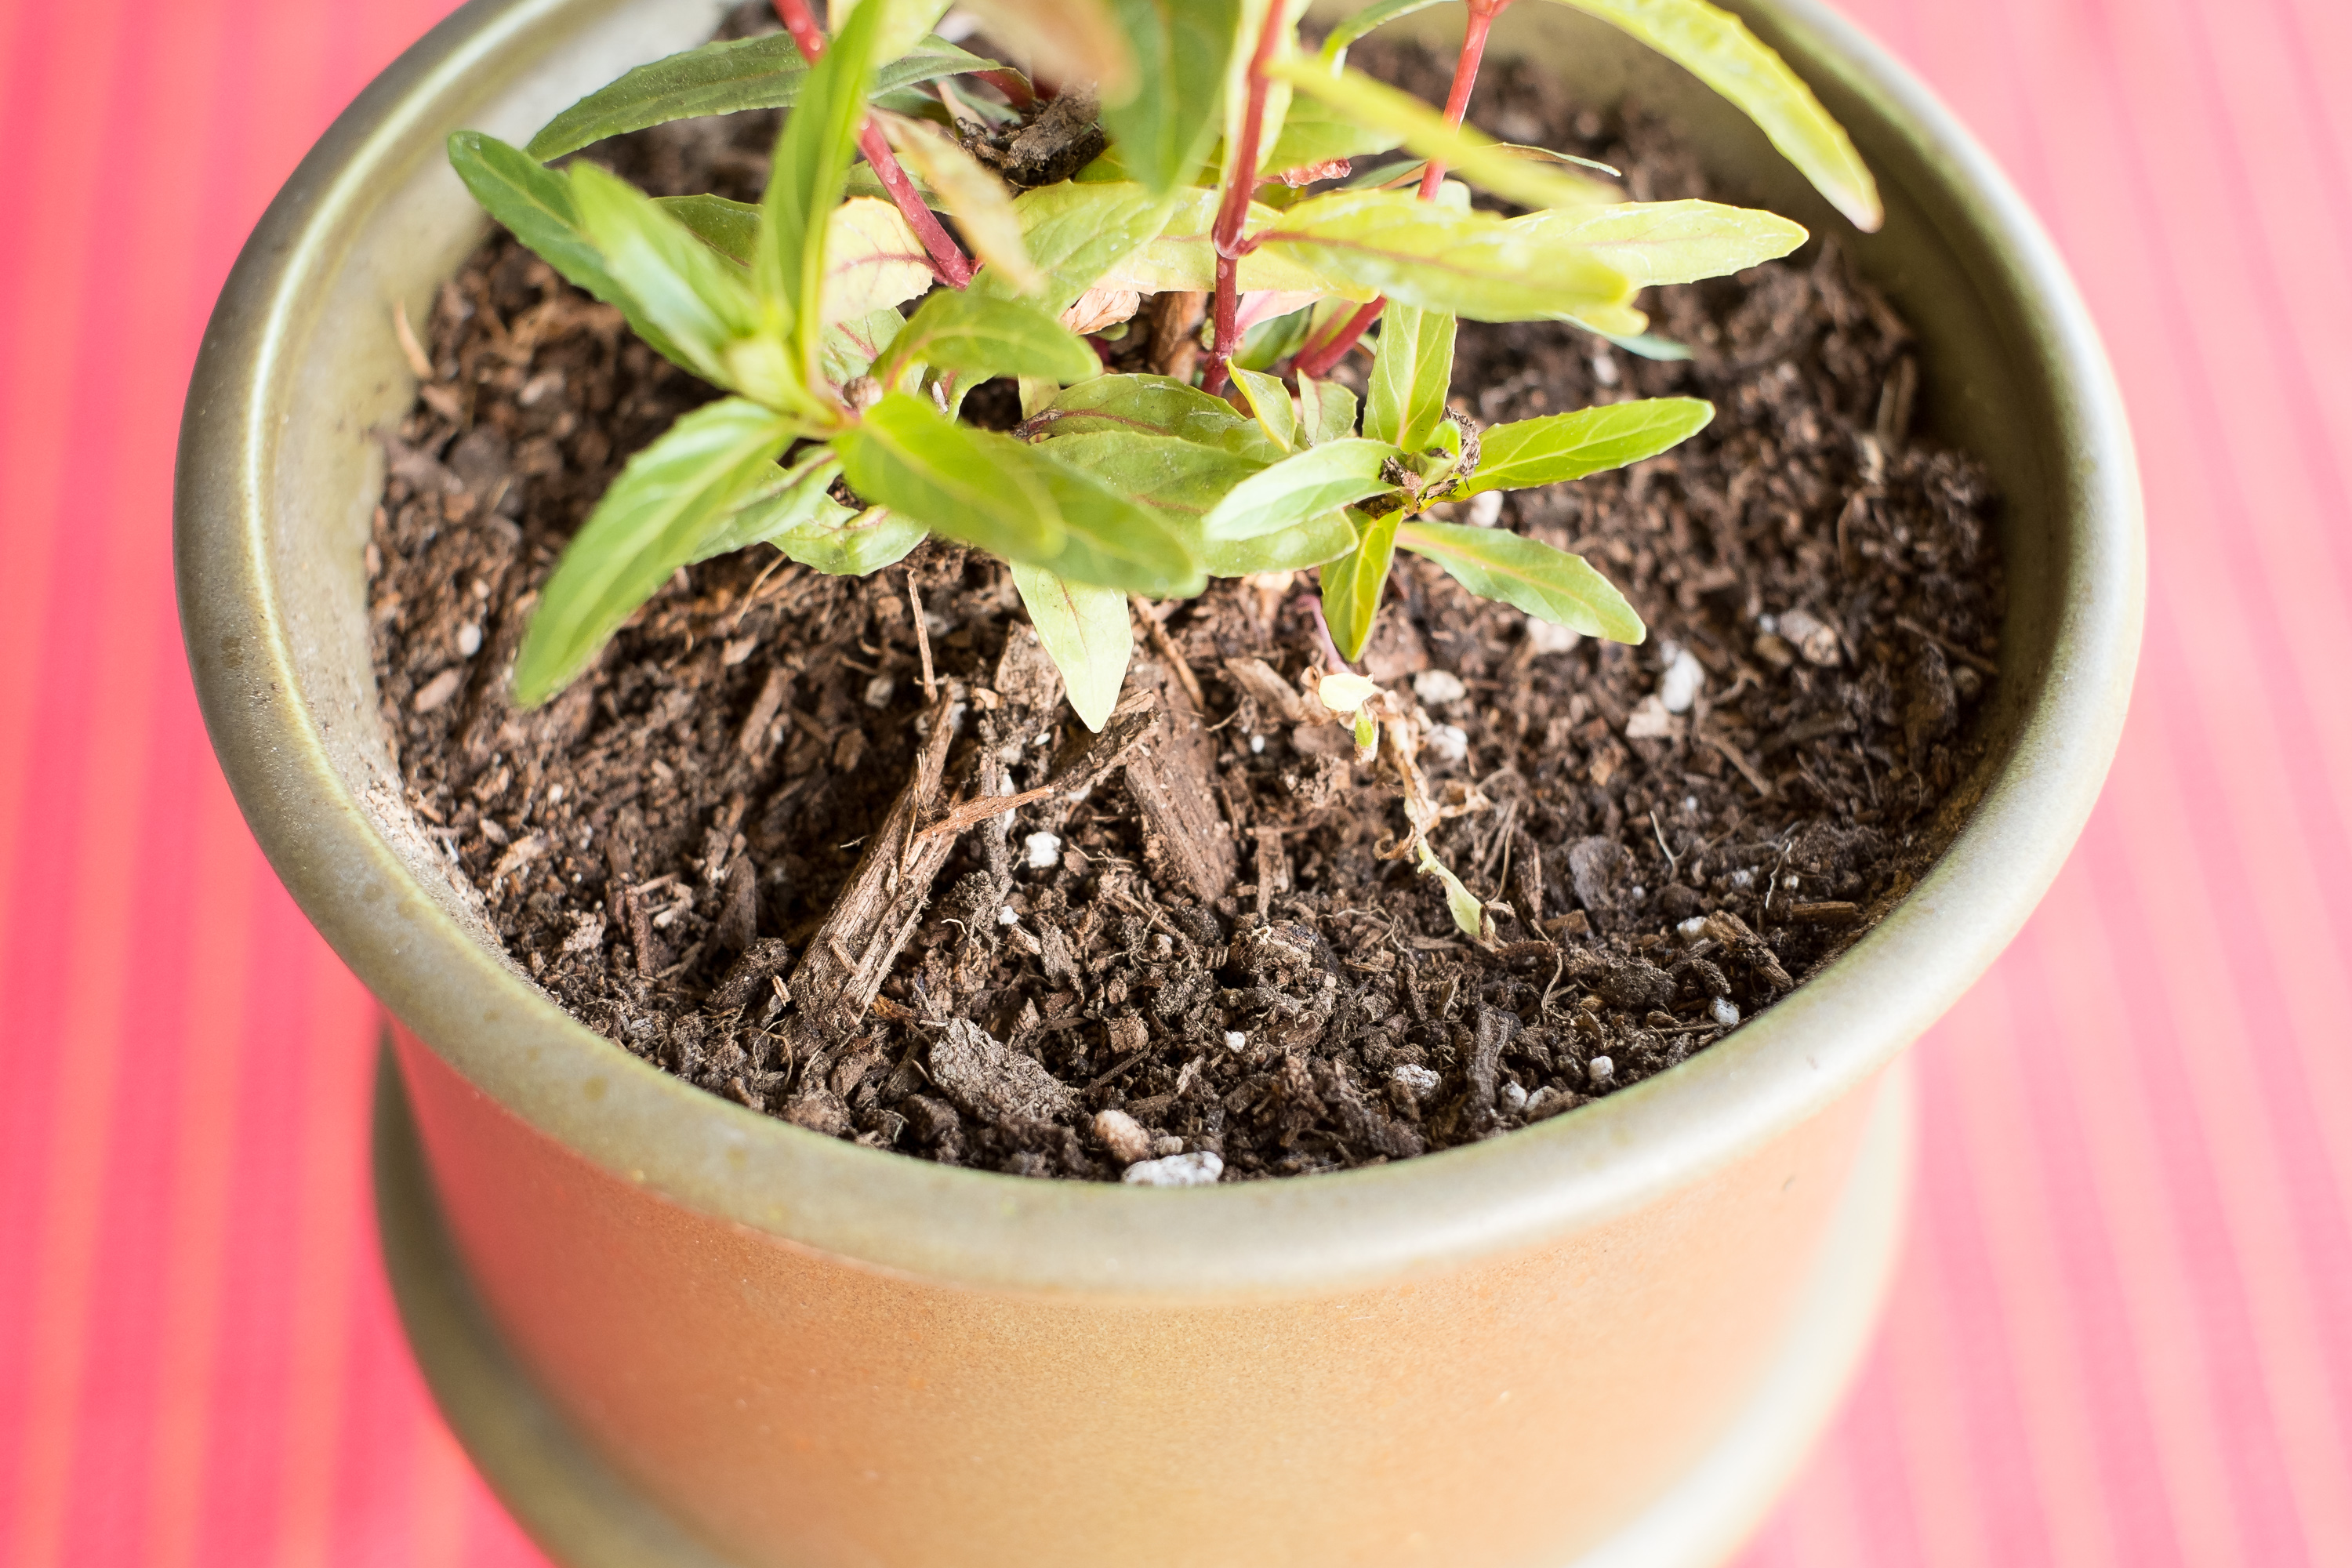 How To Get Rid Of Plant Gnats Naturally